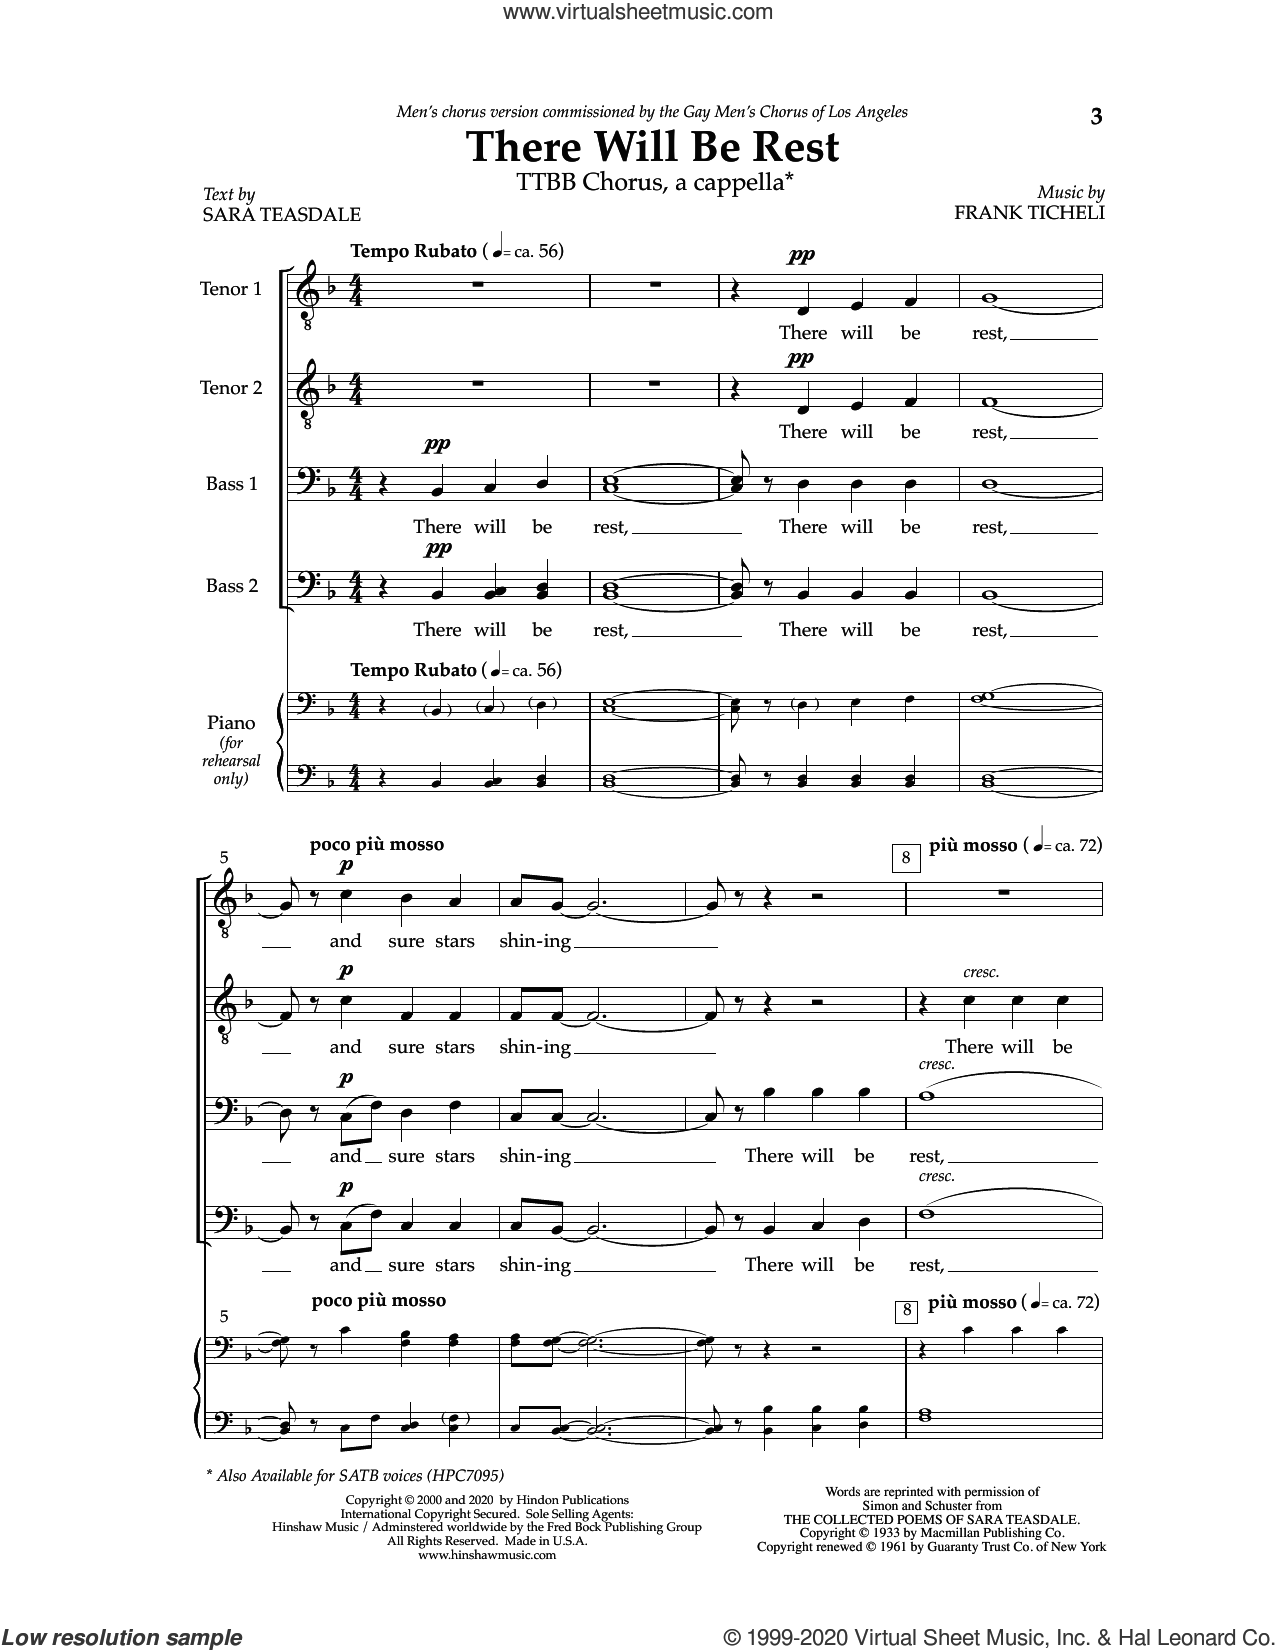 There Will Be Rest sheet music for choir (TTBB: tenor, bass) by Frank Ticheli and Sara Teasdale, intermediate skill level